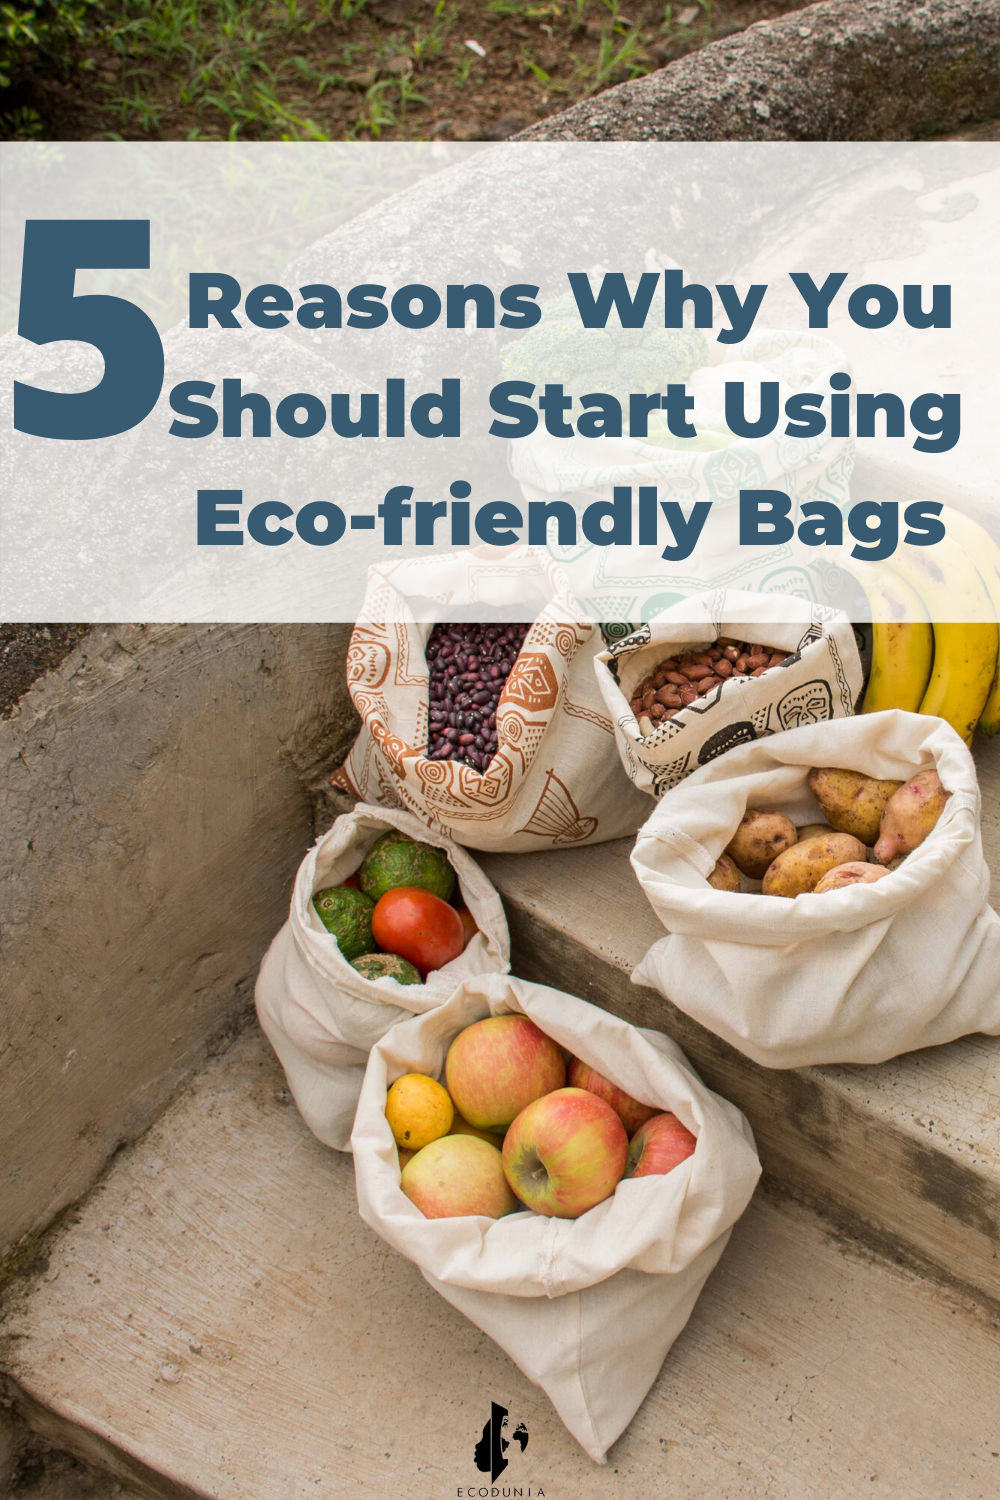 5 Reasons Why You Should  Start Using Eco-Friendly Bags